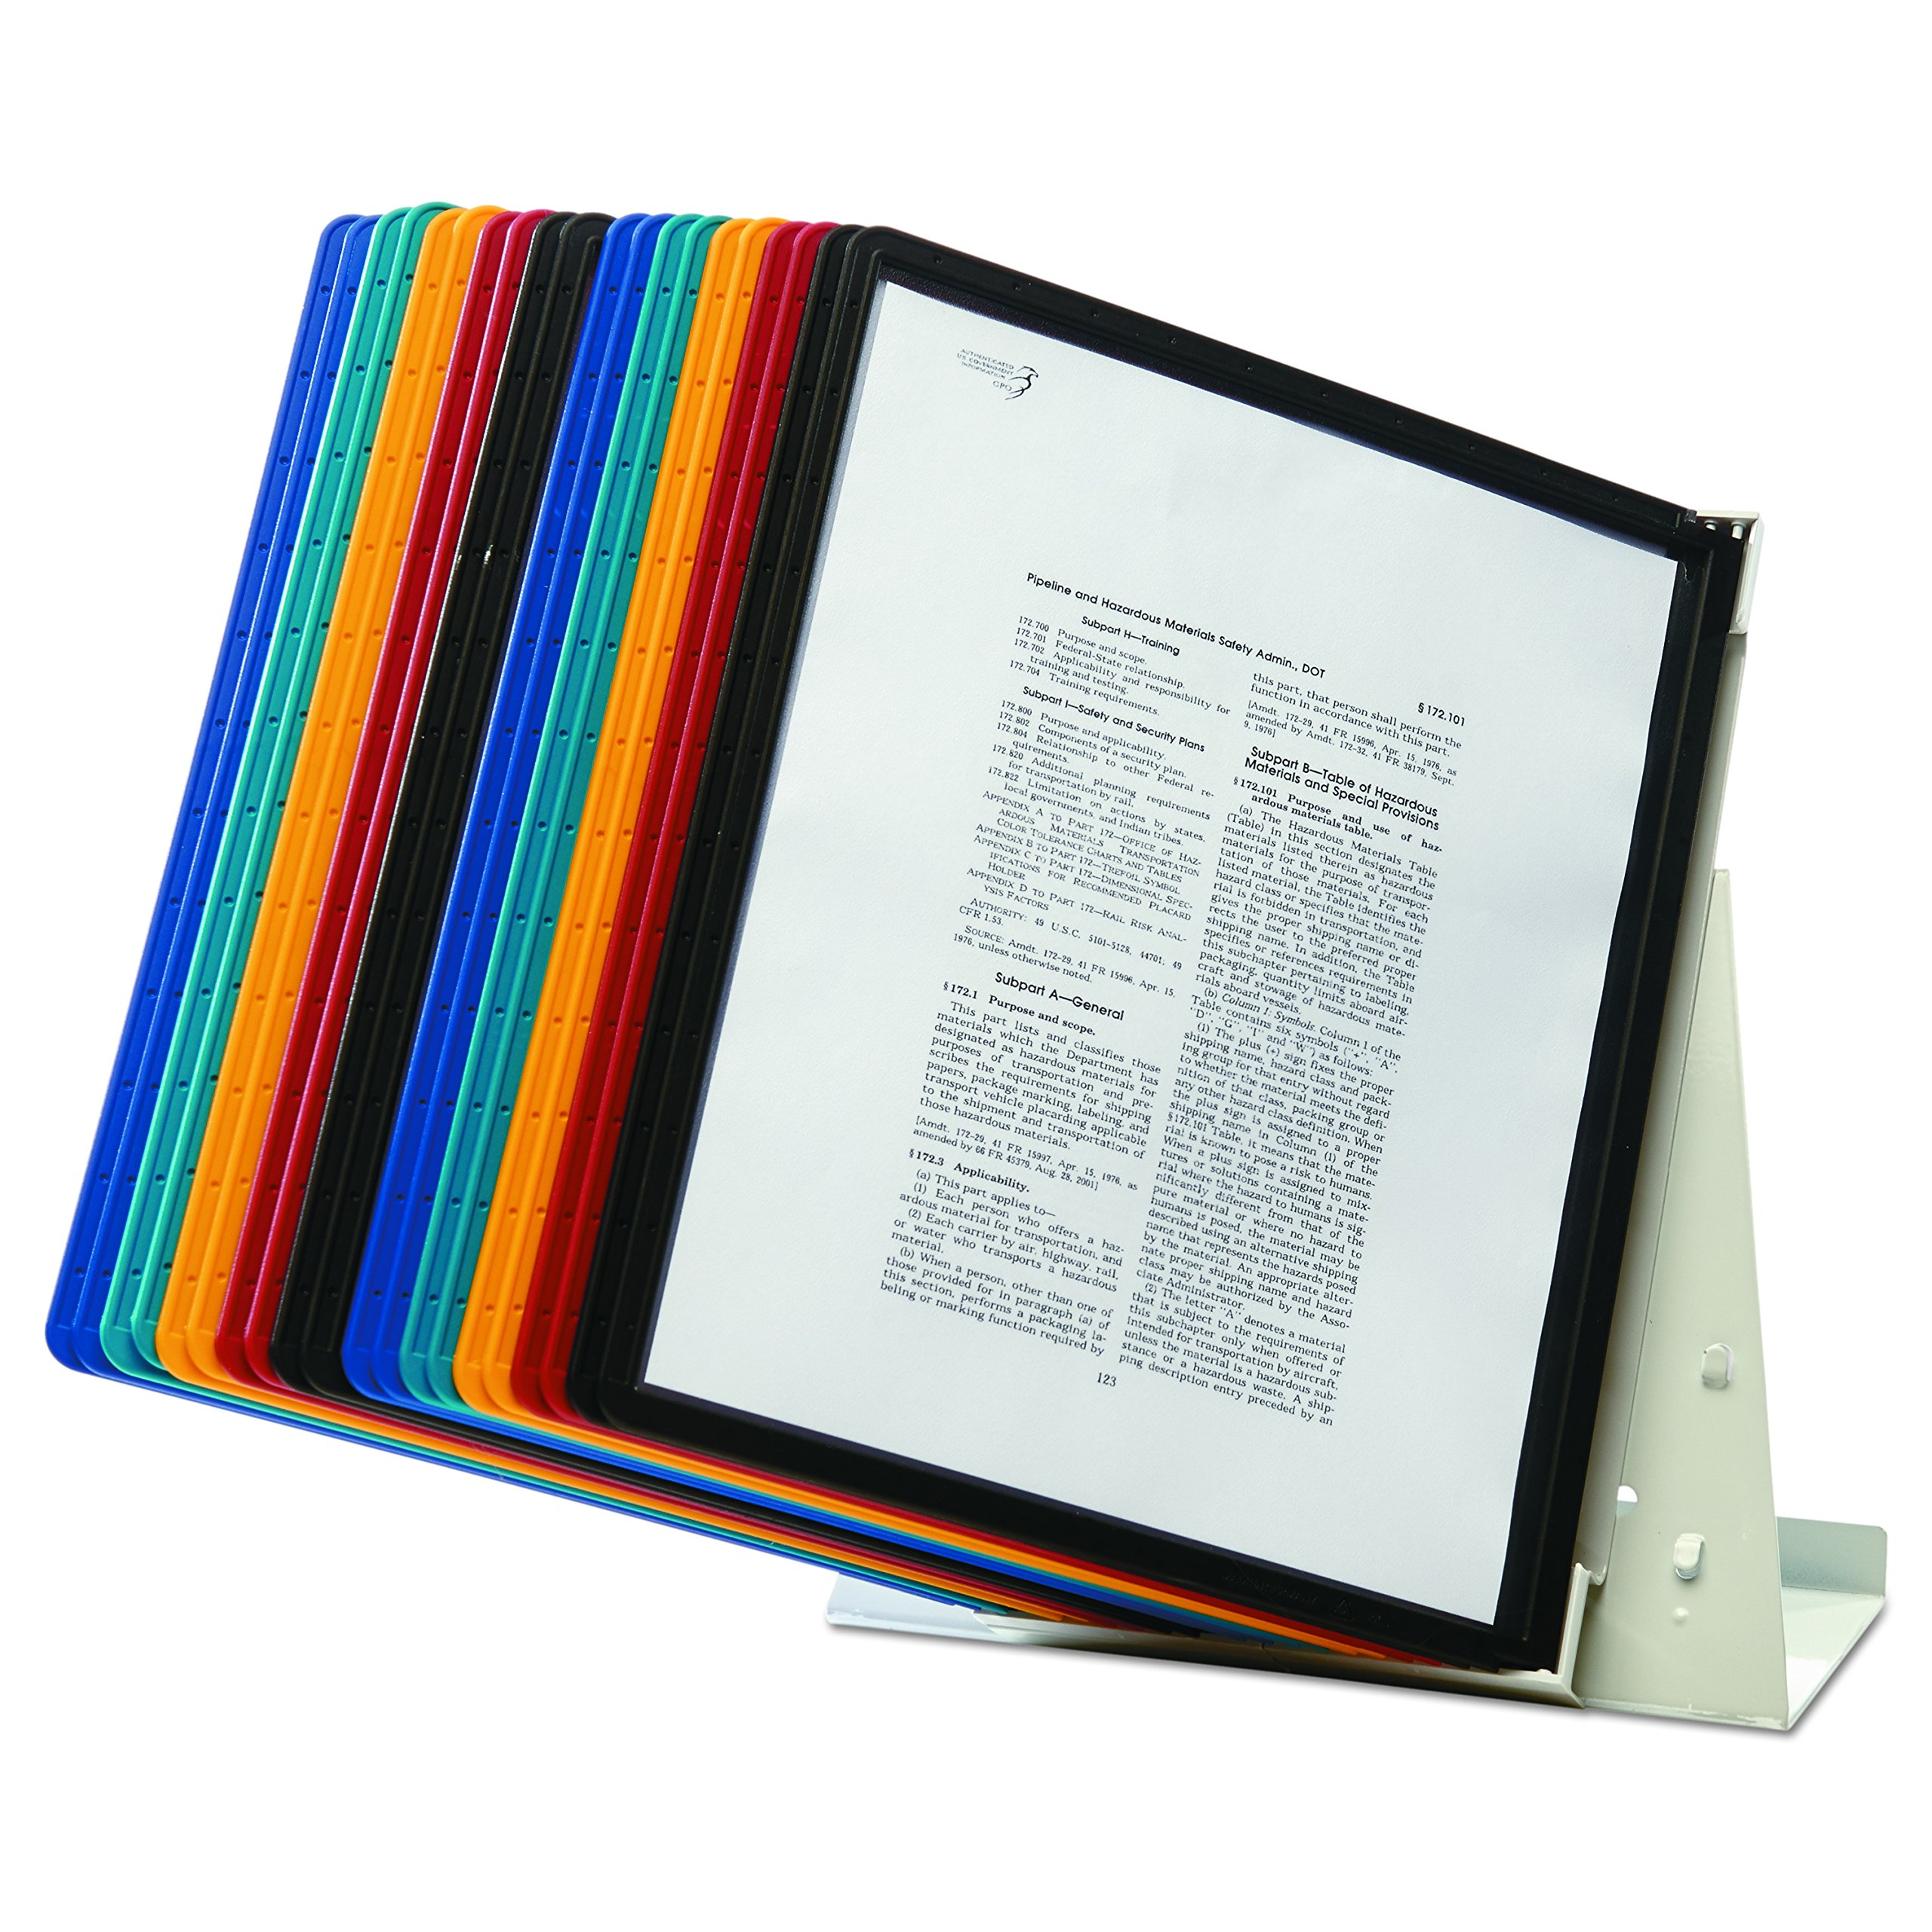 DURABLE Vario 20-Panel Desktop Reference System, Assorted Color Borders (536100) by Durable (Image #7)